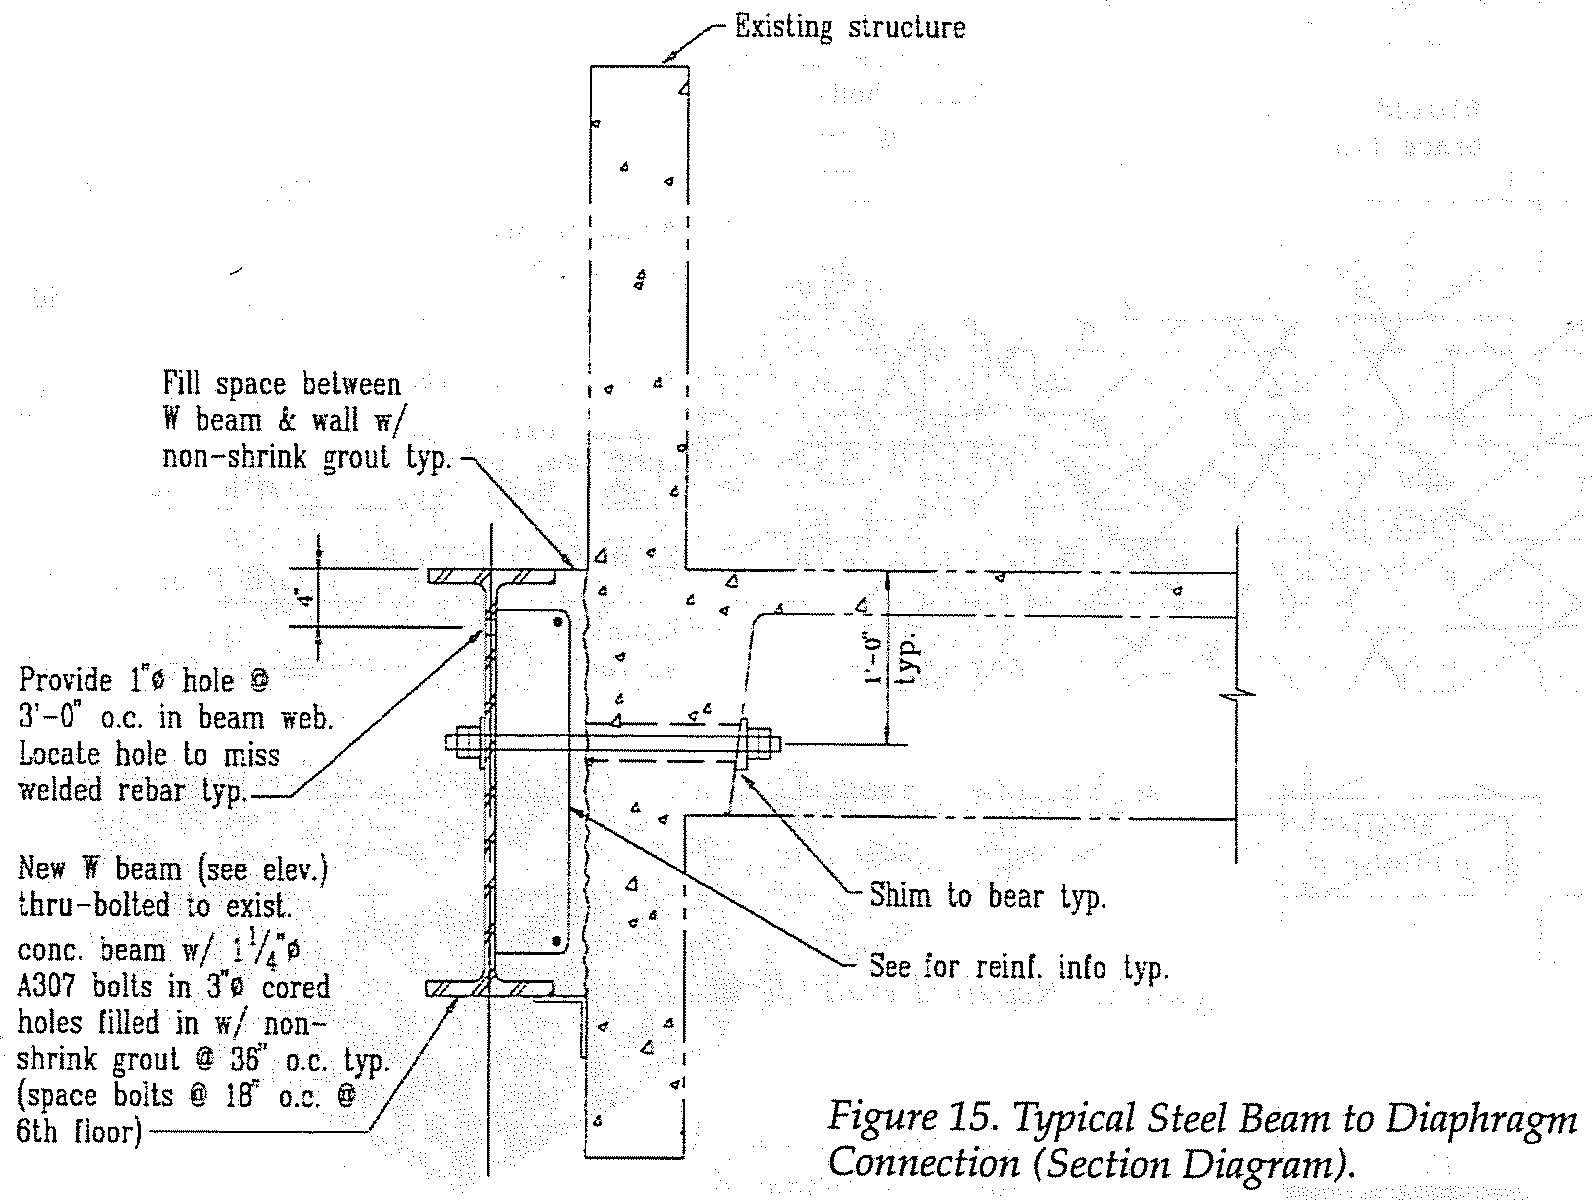 Typical steel beam to diaphragm connection (section diagram.  (SSC, 1994)